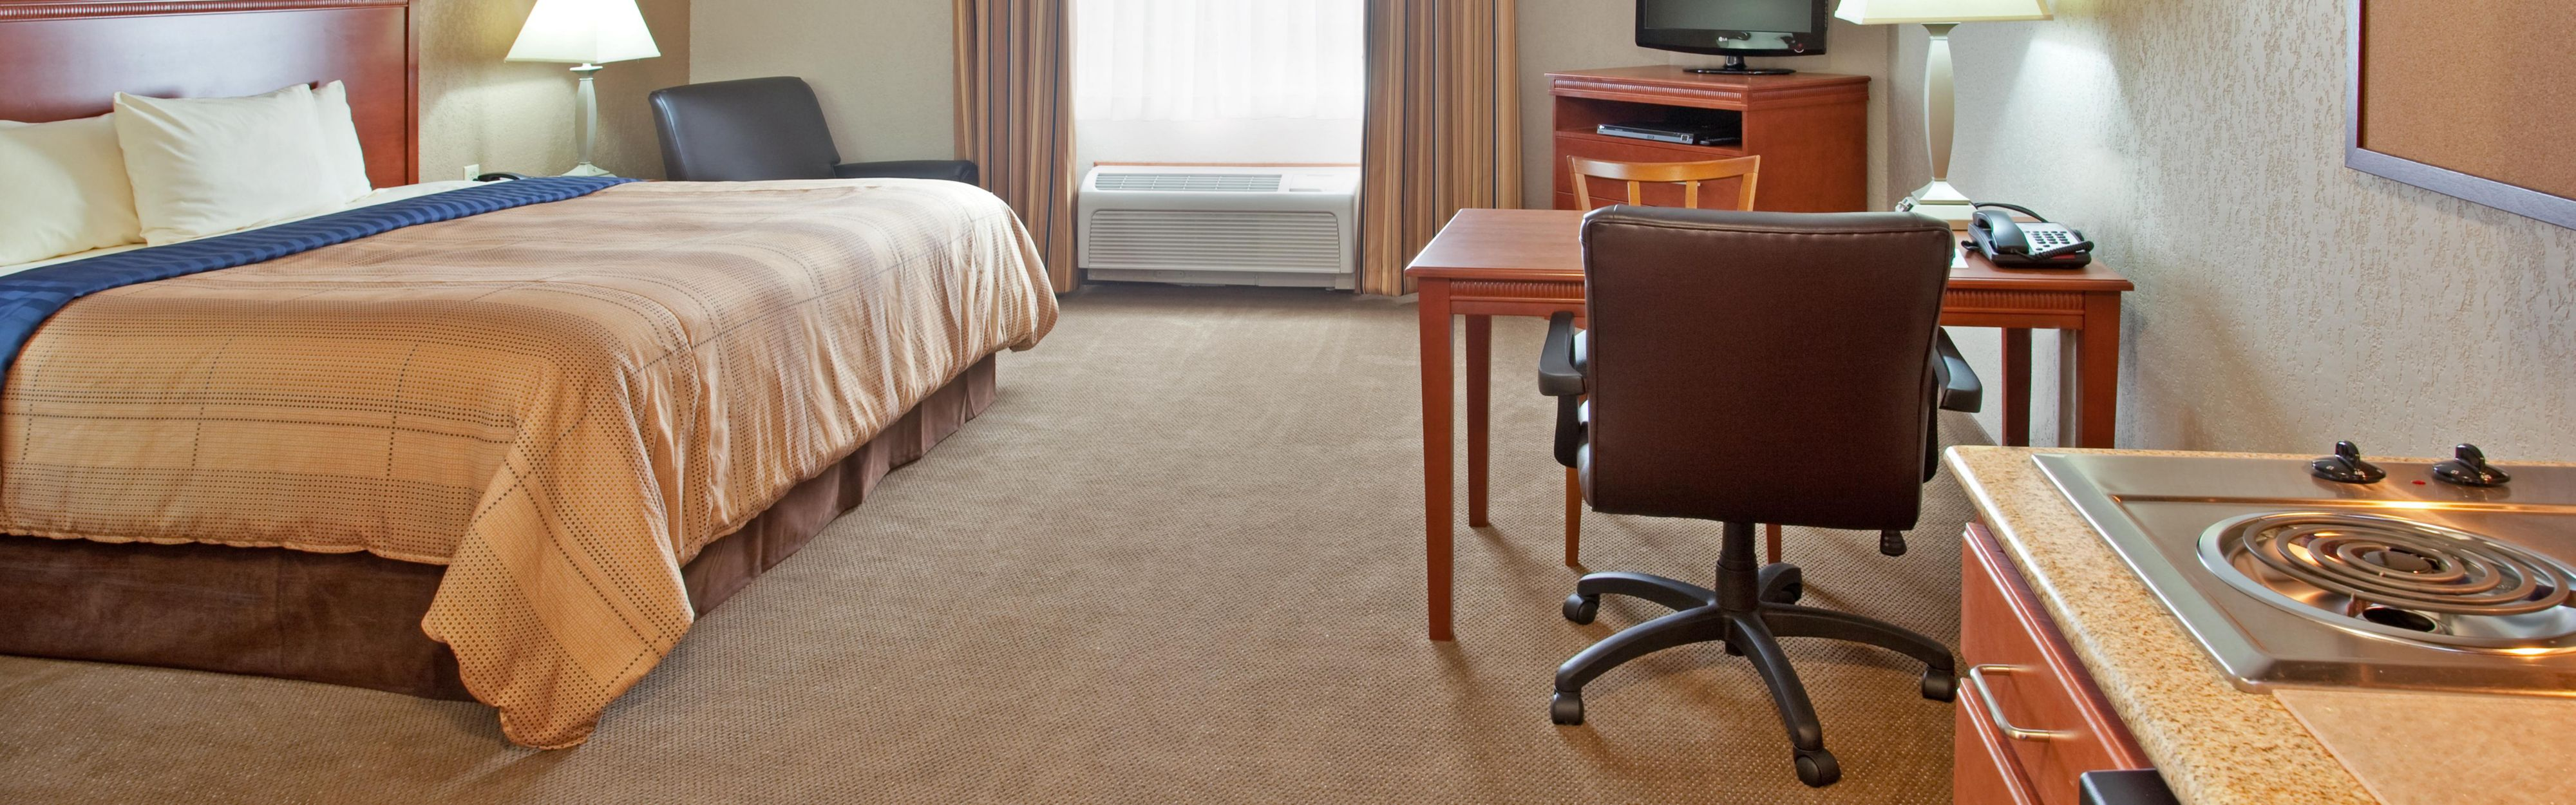 Candlewood Suites Elgin NW-Chicago image 1